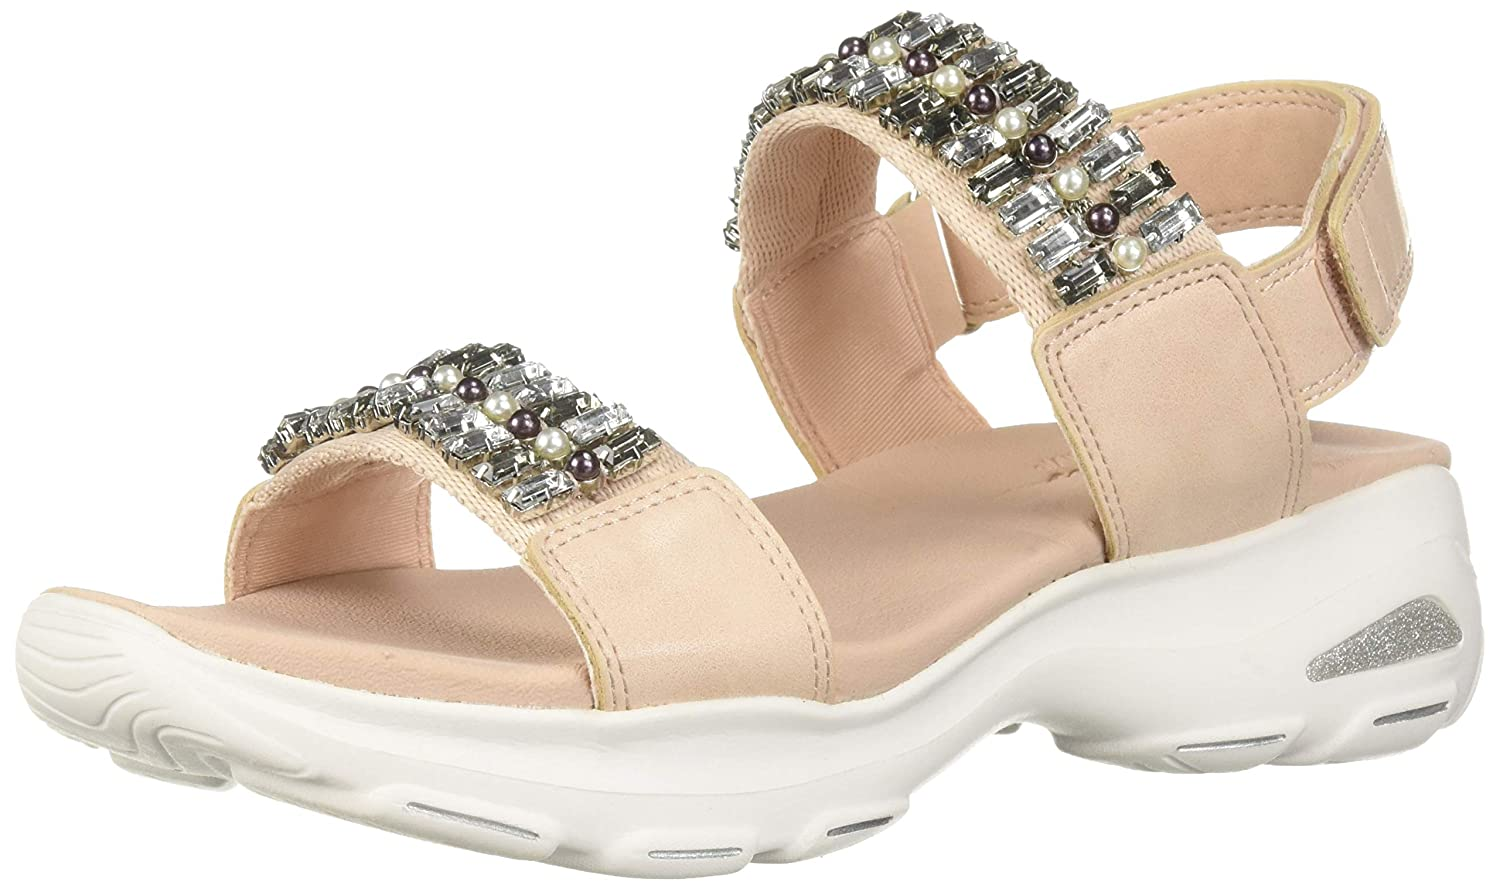 Skechers Womens DLites Ultra-Unicorn Posse-Rhinestone Double Strap Slingback Sandal, Blush, 11 M US